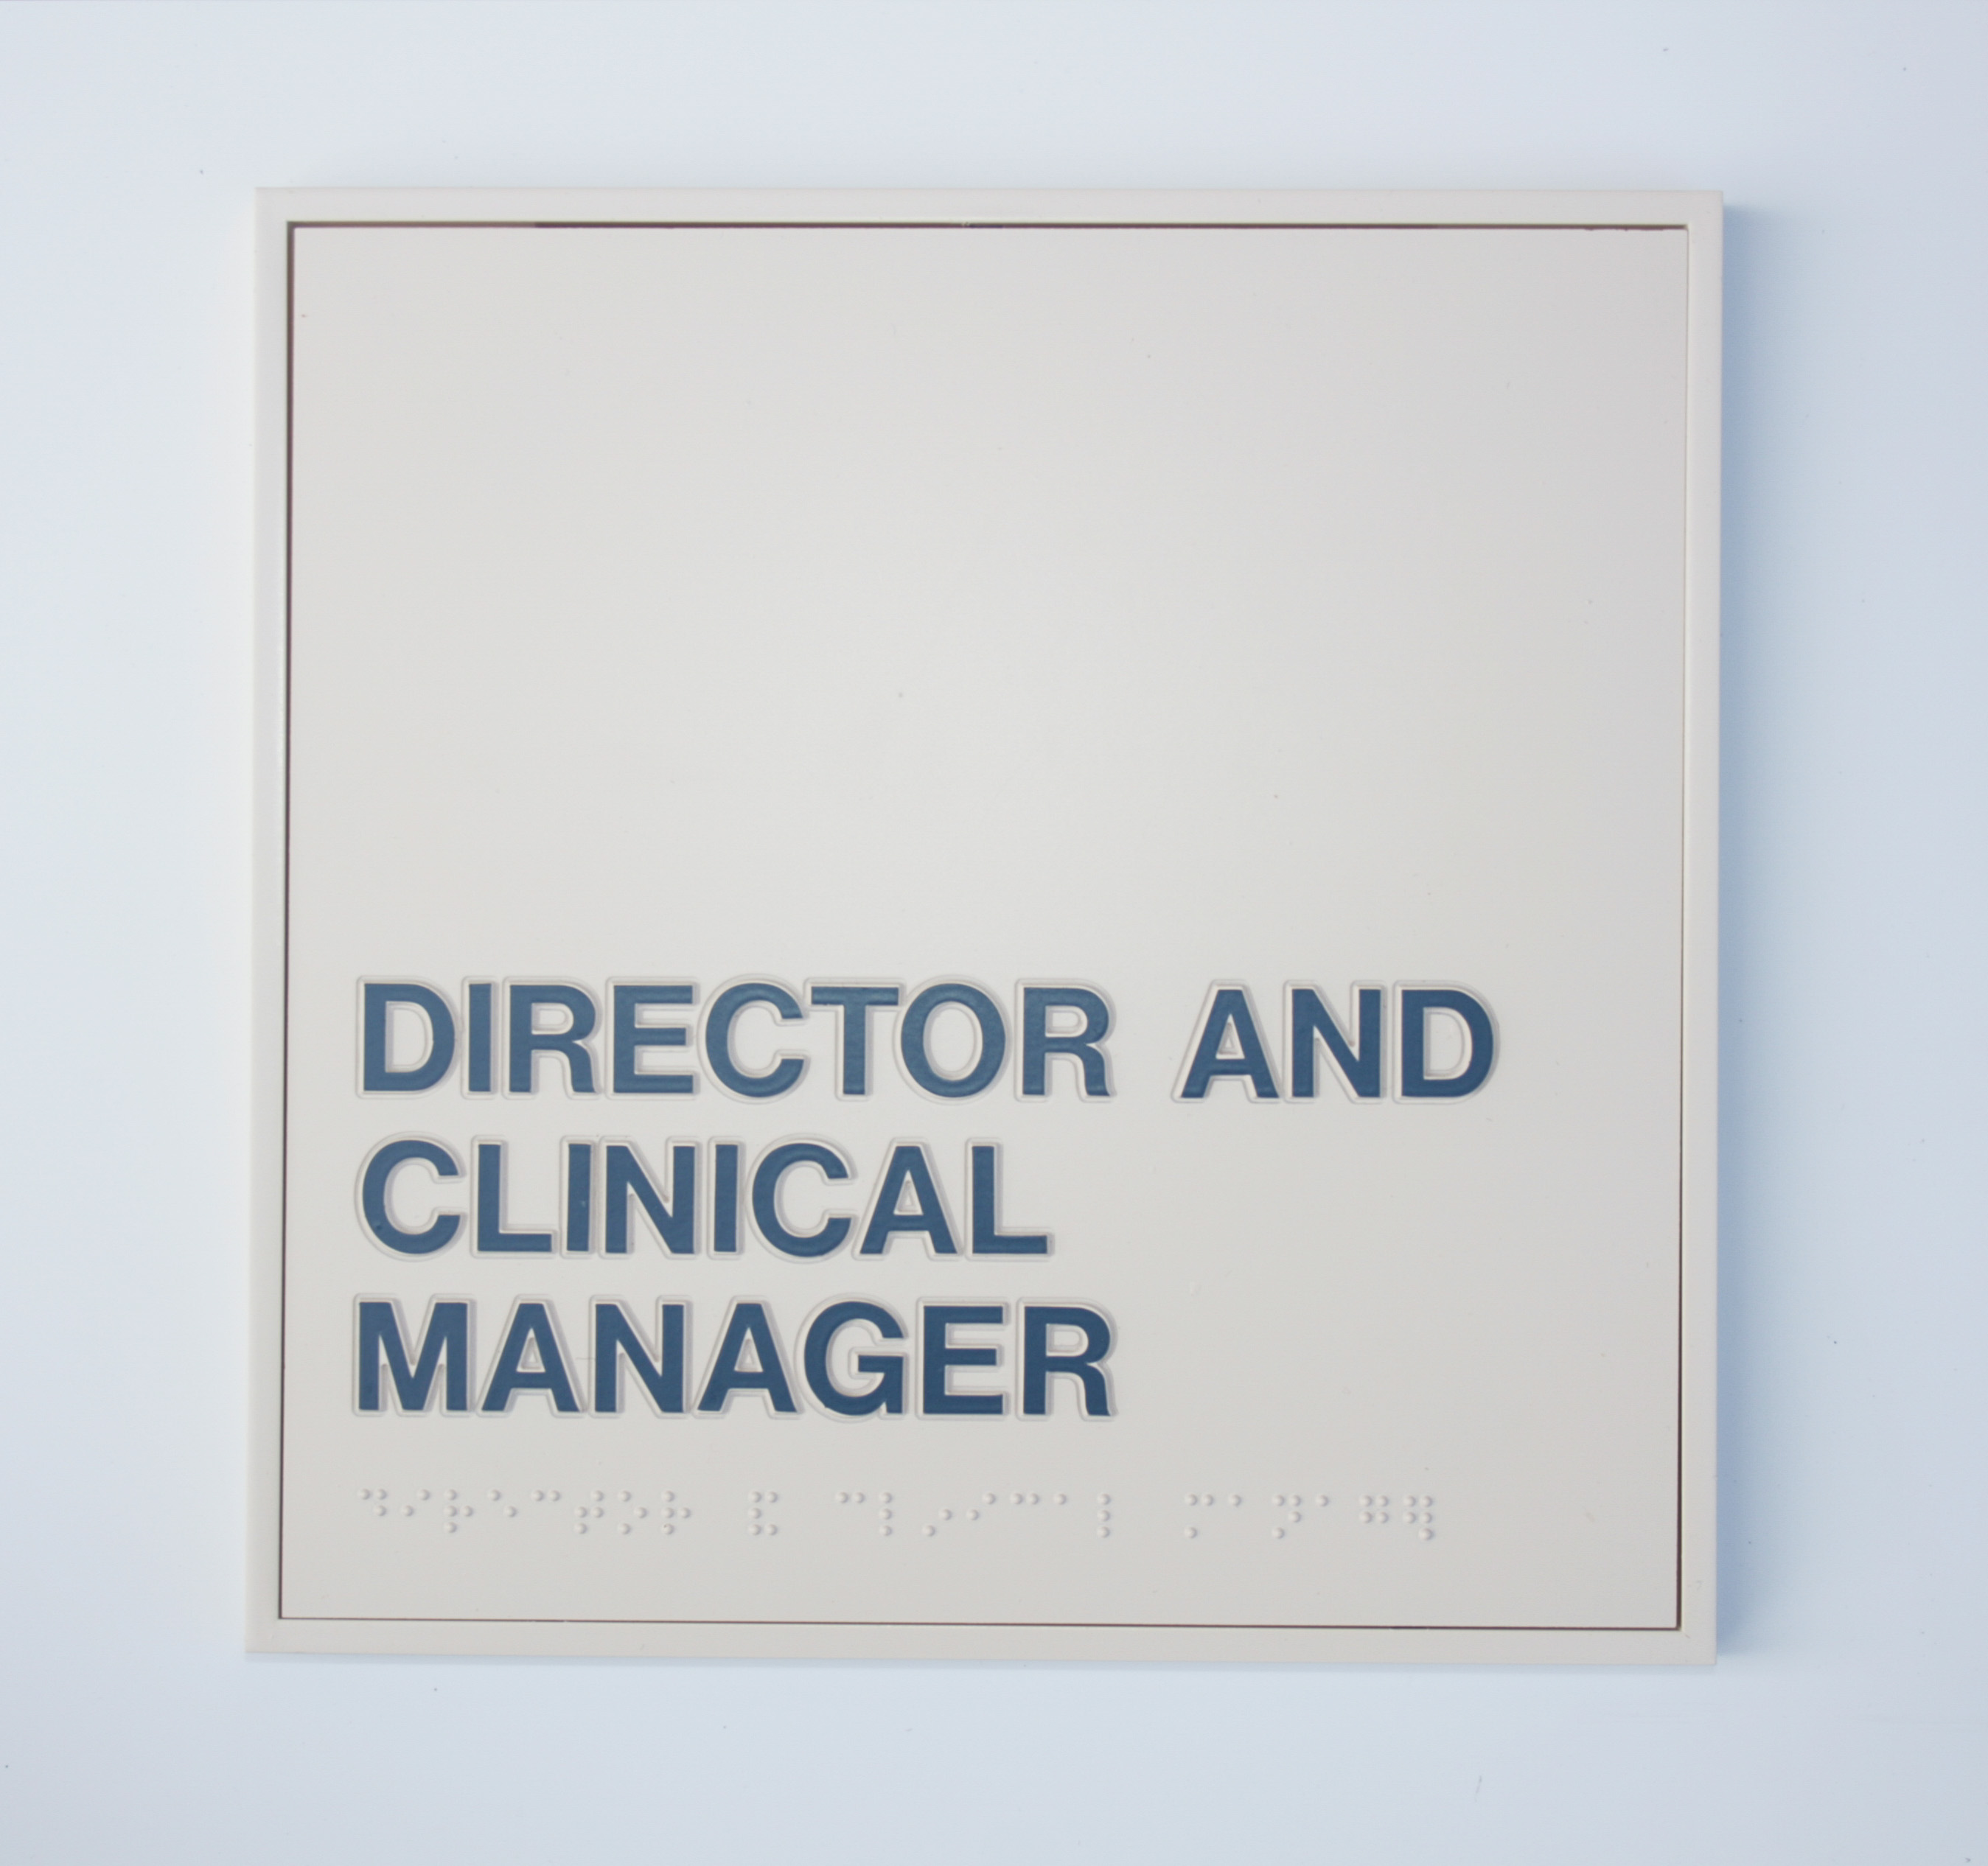 Director Braille Sign